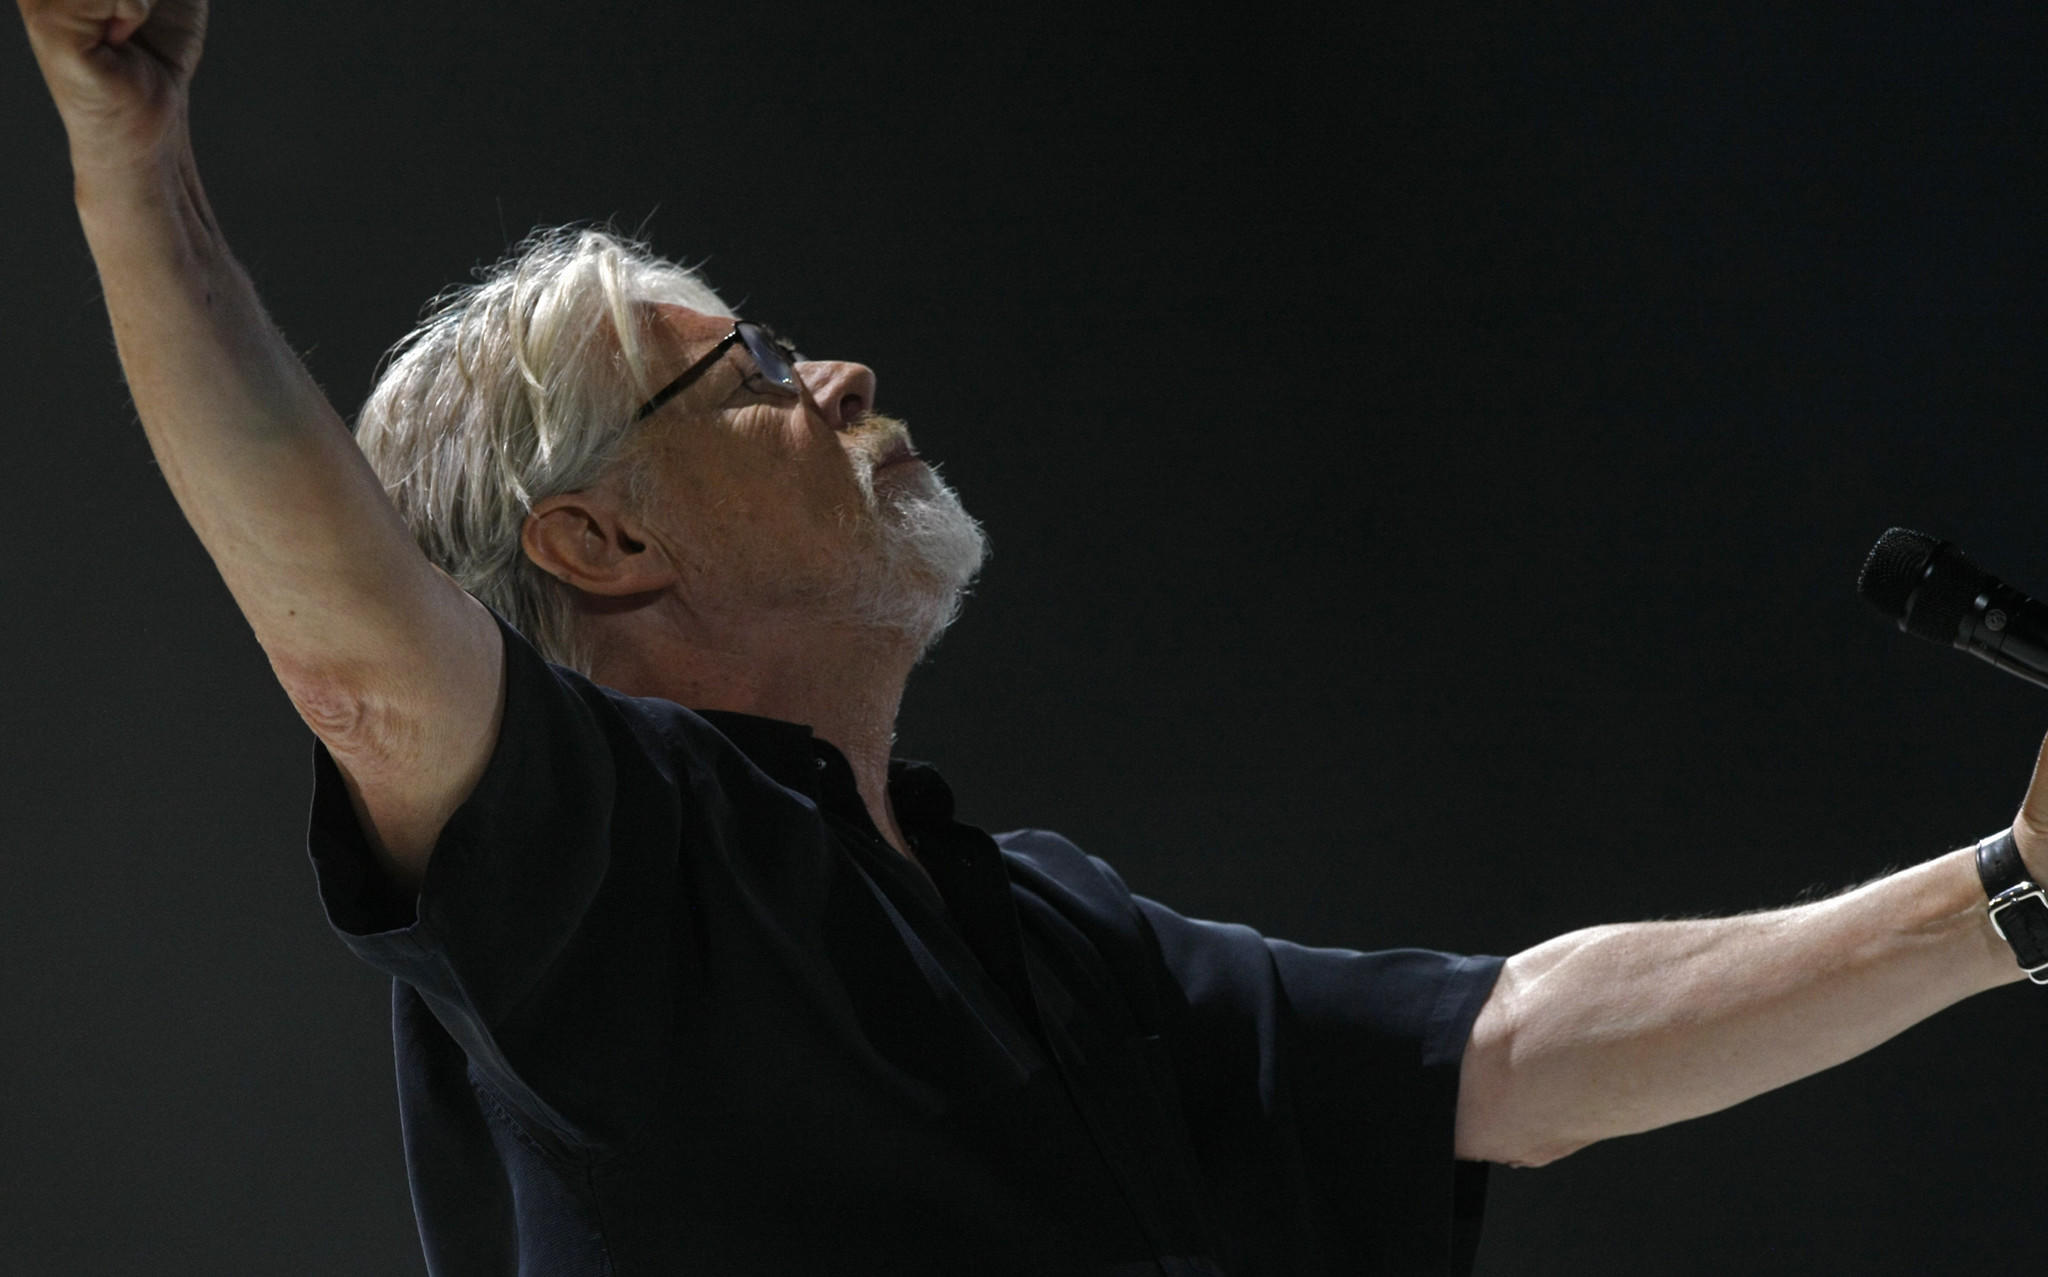 Rocker Bob Seger performs at a concert in San Diego in 2015. Seger announced Tuesday the postponement of 19 concert dates due to an unspecified medical concern. (Don Bartletti / Los Angeles Times)